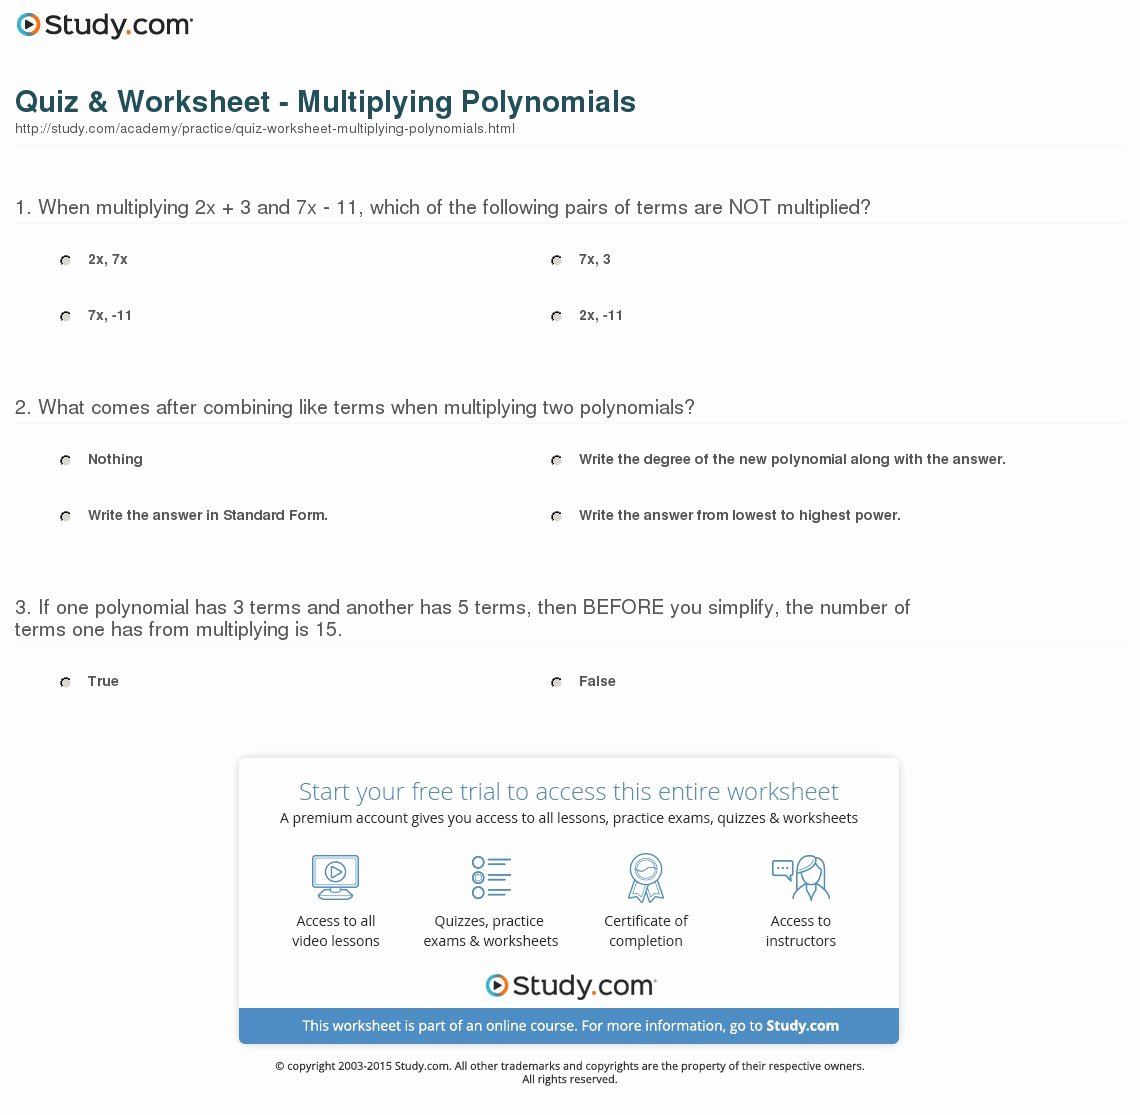 Multiplying Polynomials Worksheet 1 Answers Luxury Quiz & Worksheet Multiplying Polynomials